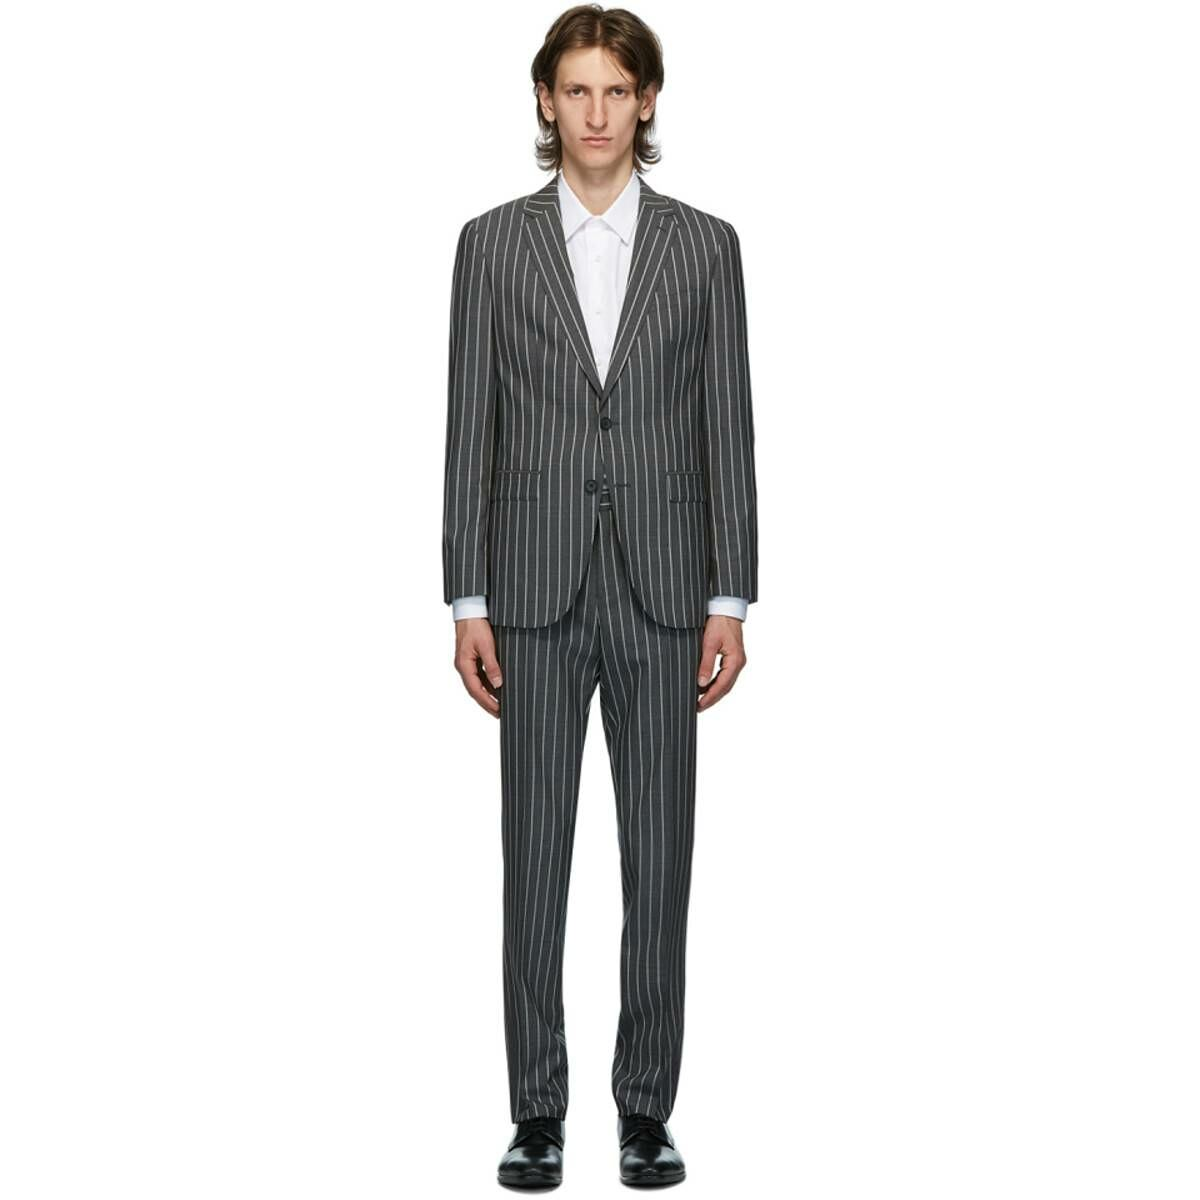 Boss Grey Striped Novan Suit Ssense USA MEN Men FASHION Mens SUITS